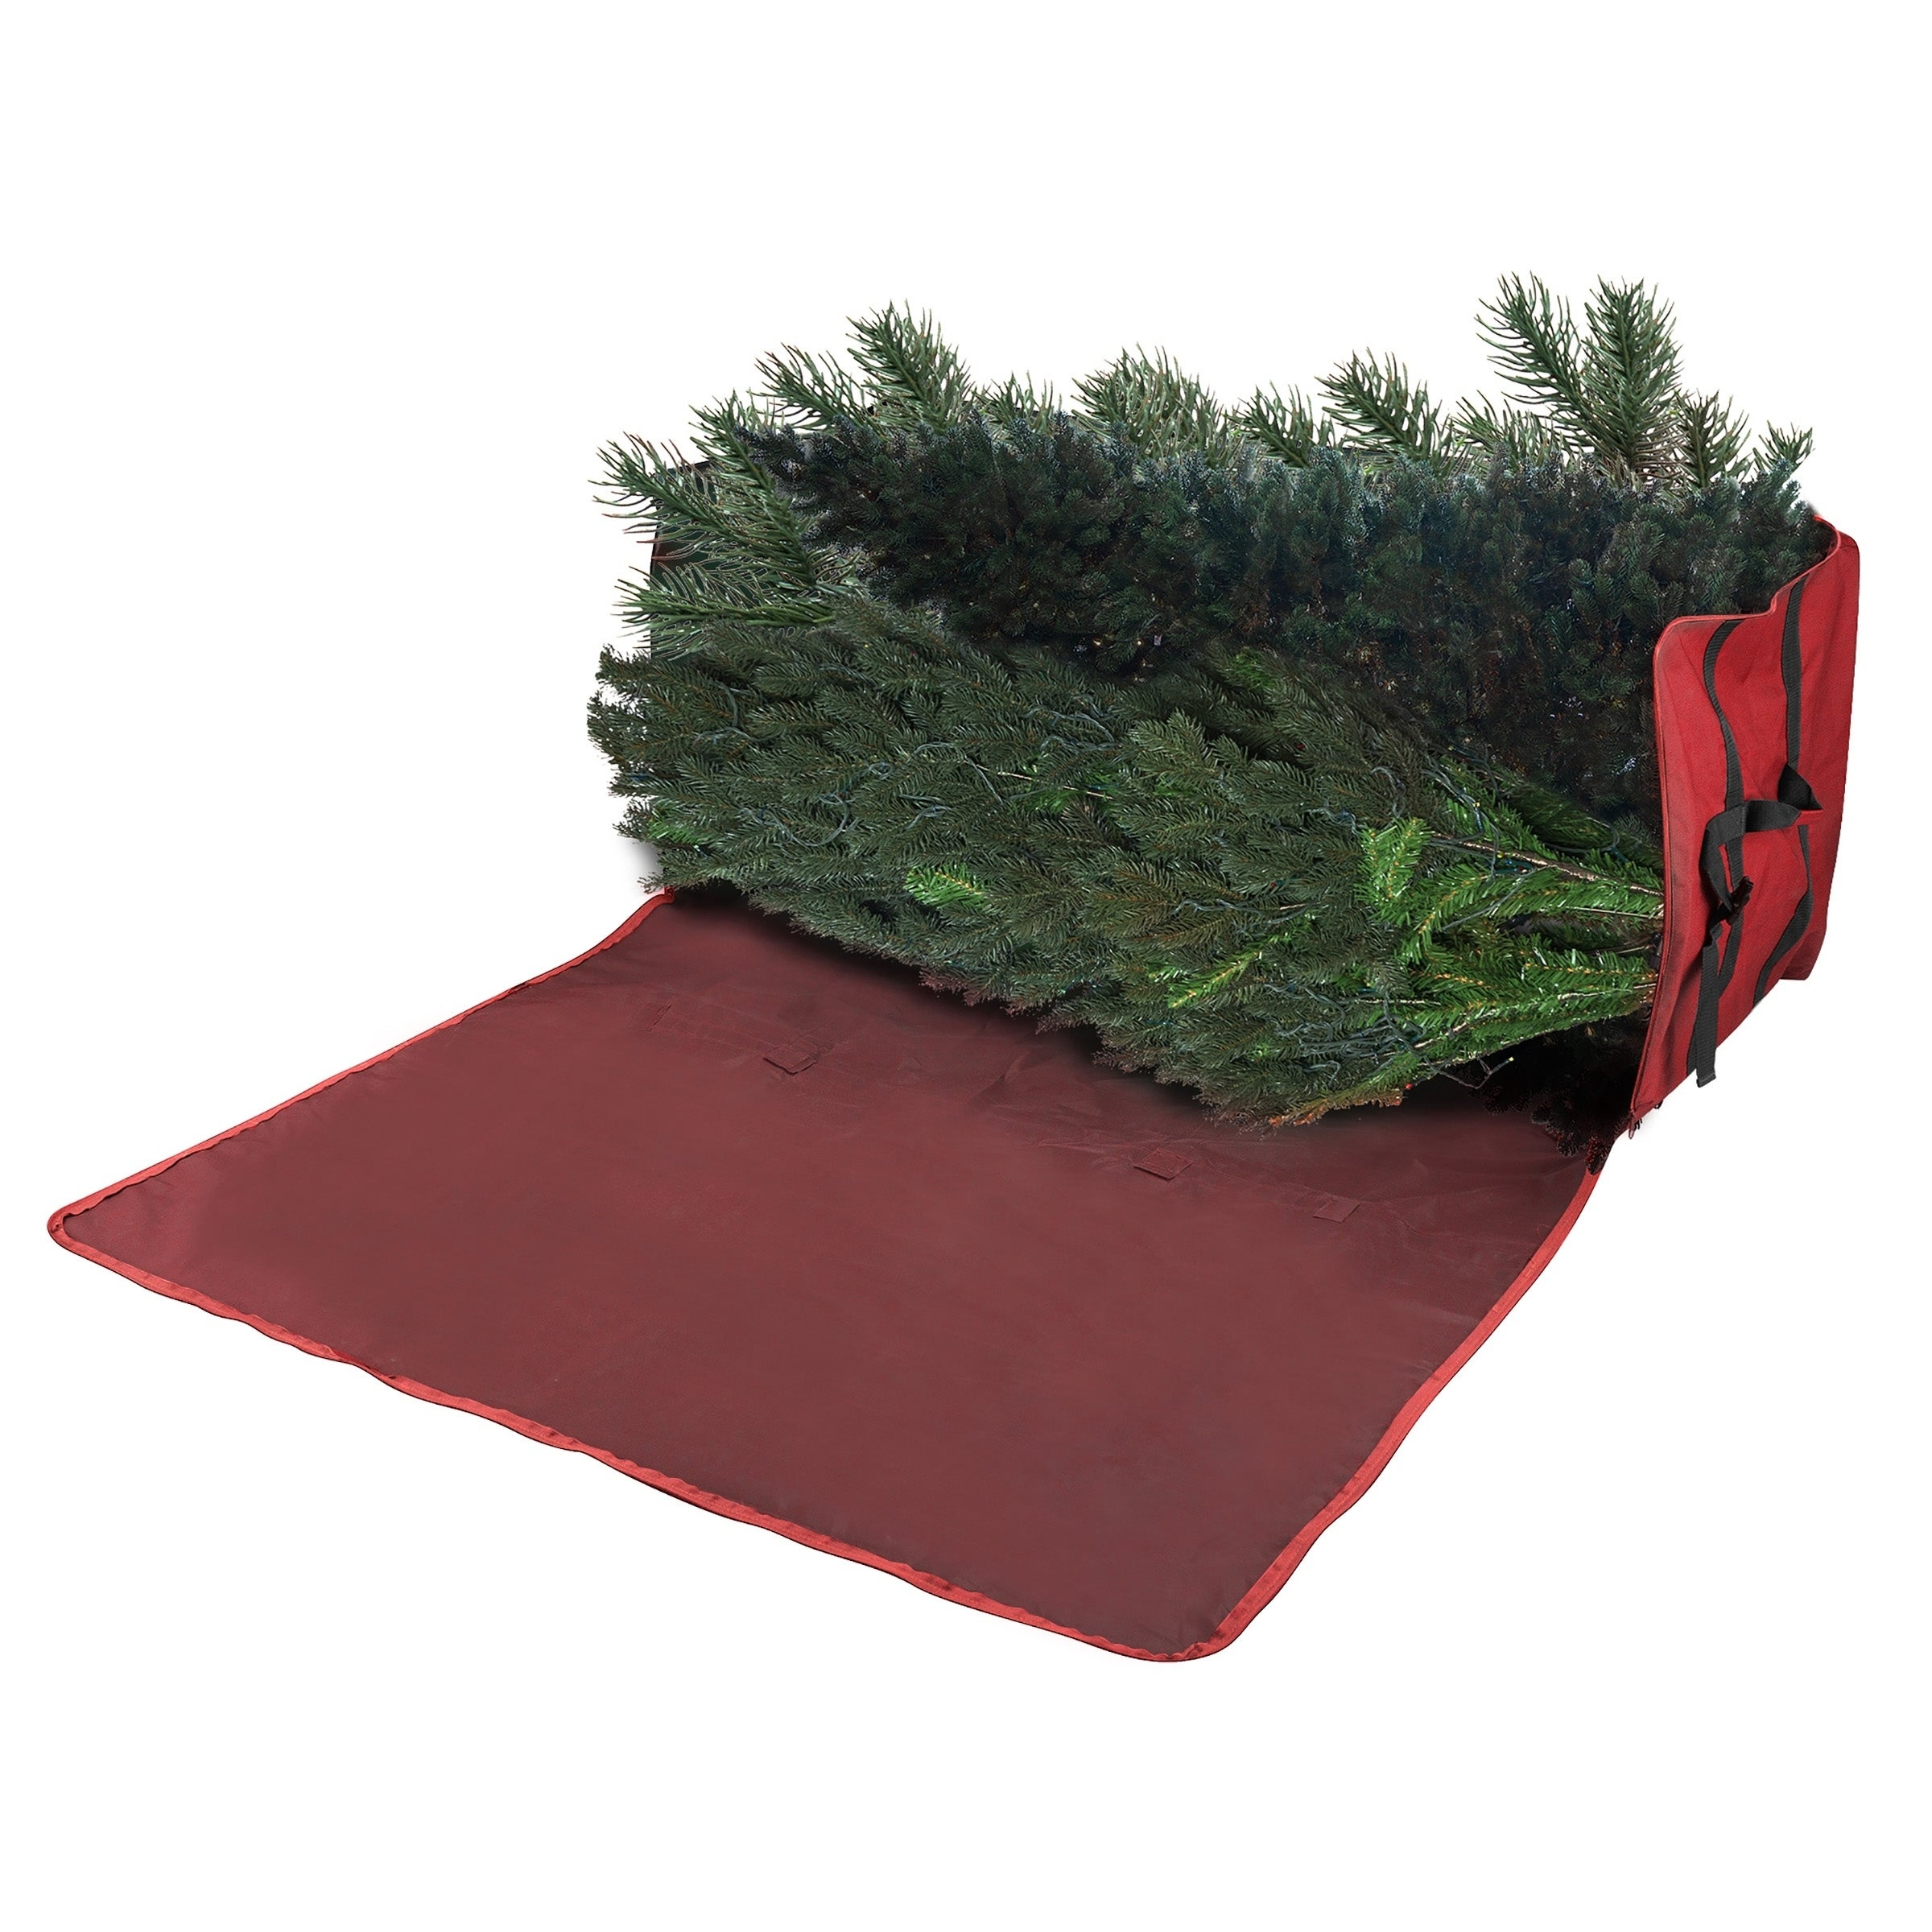 Christmas Tree Storage Bag.Elf Stor Heavy Duty Canvas Christmas Tree Storage Bag 7 5 Tree